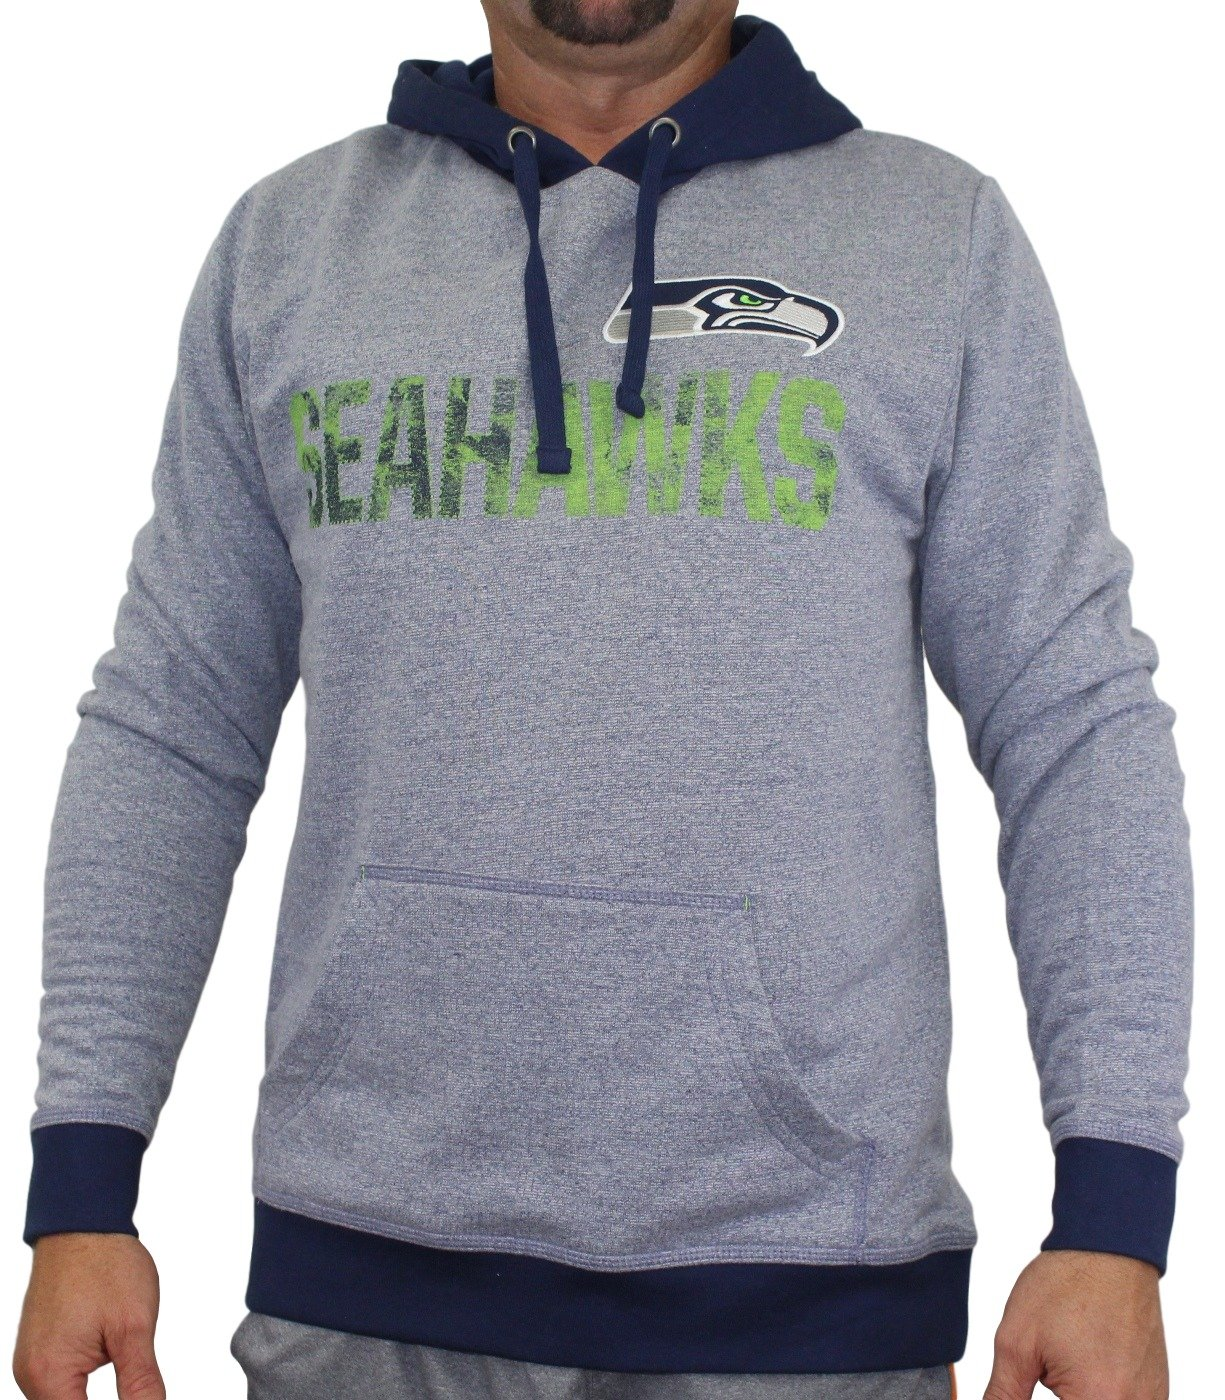 Seattle Seahawks Majestic NFL「Gameday